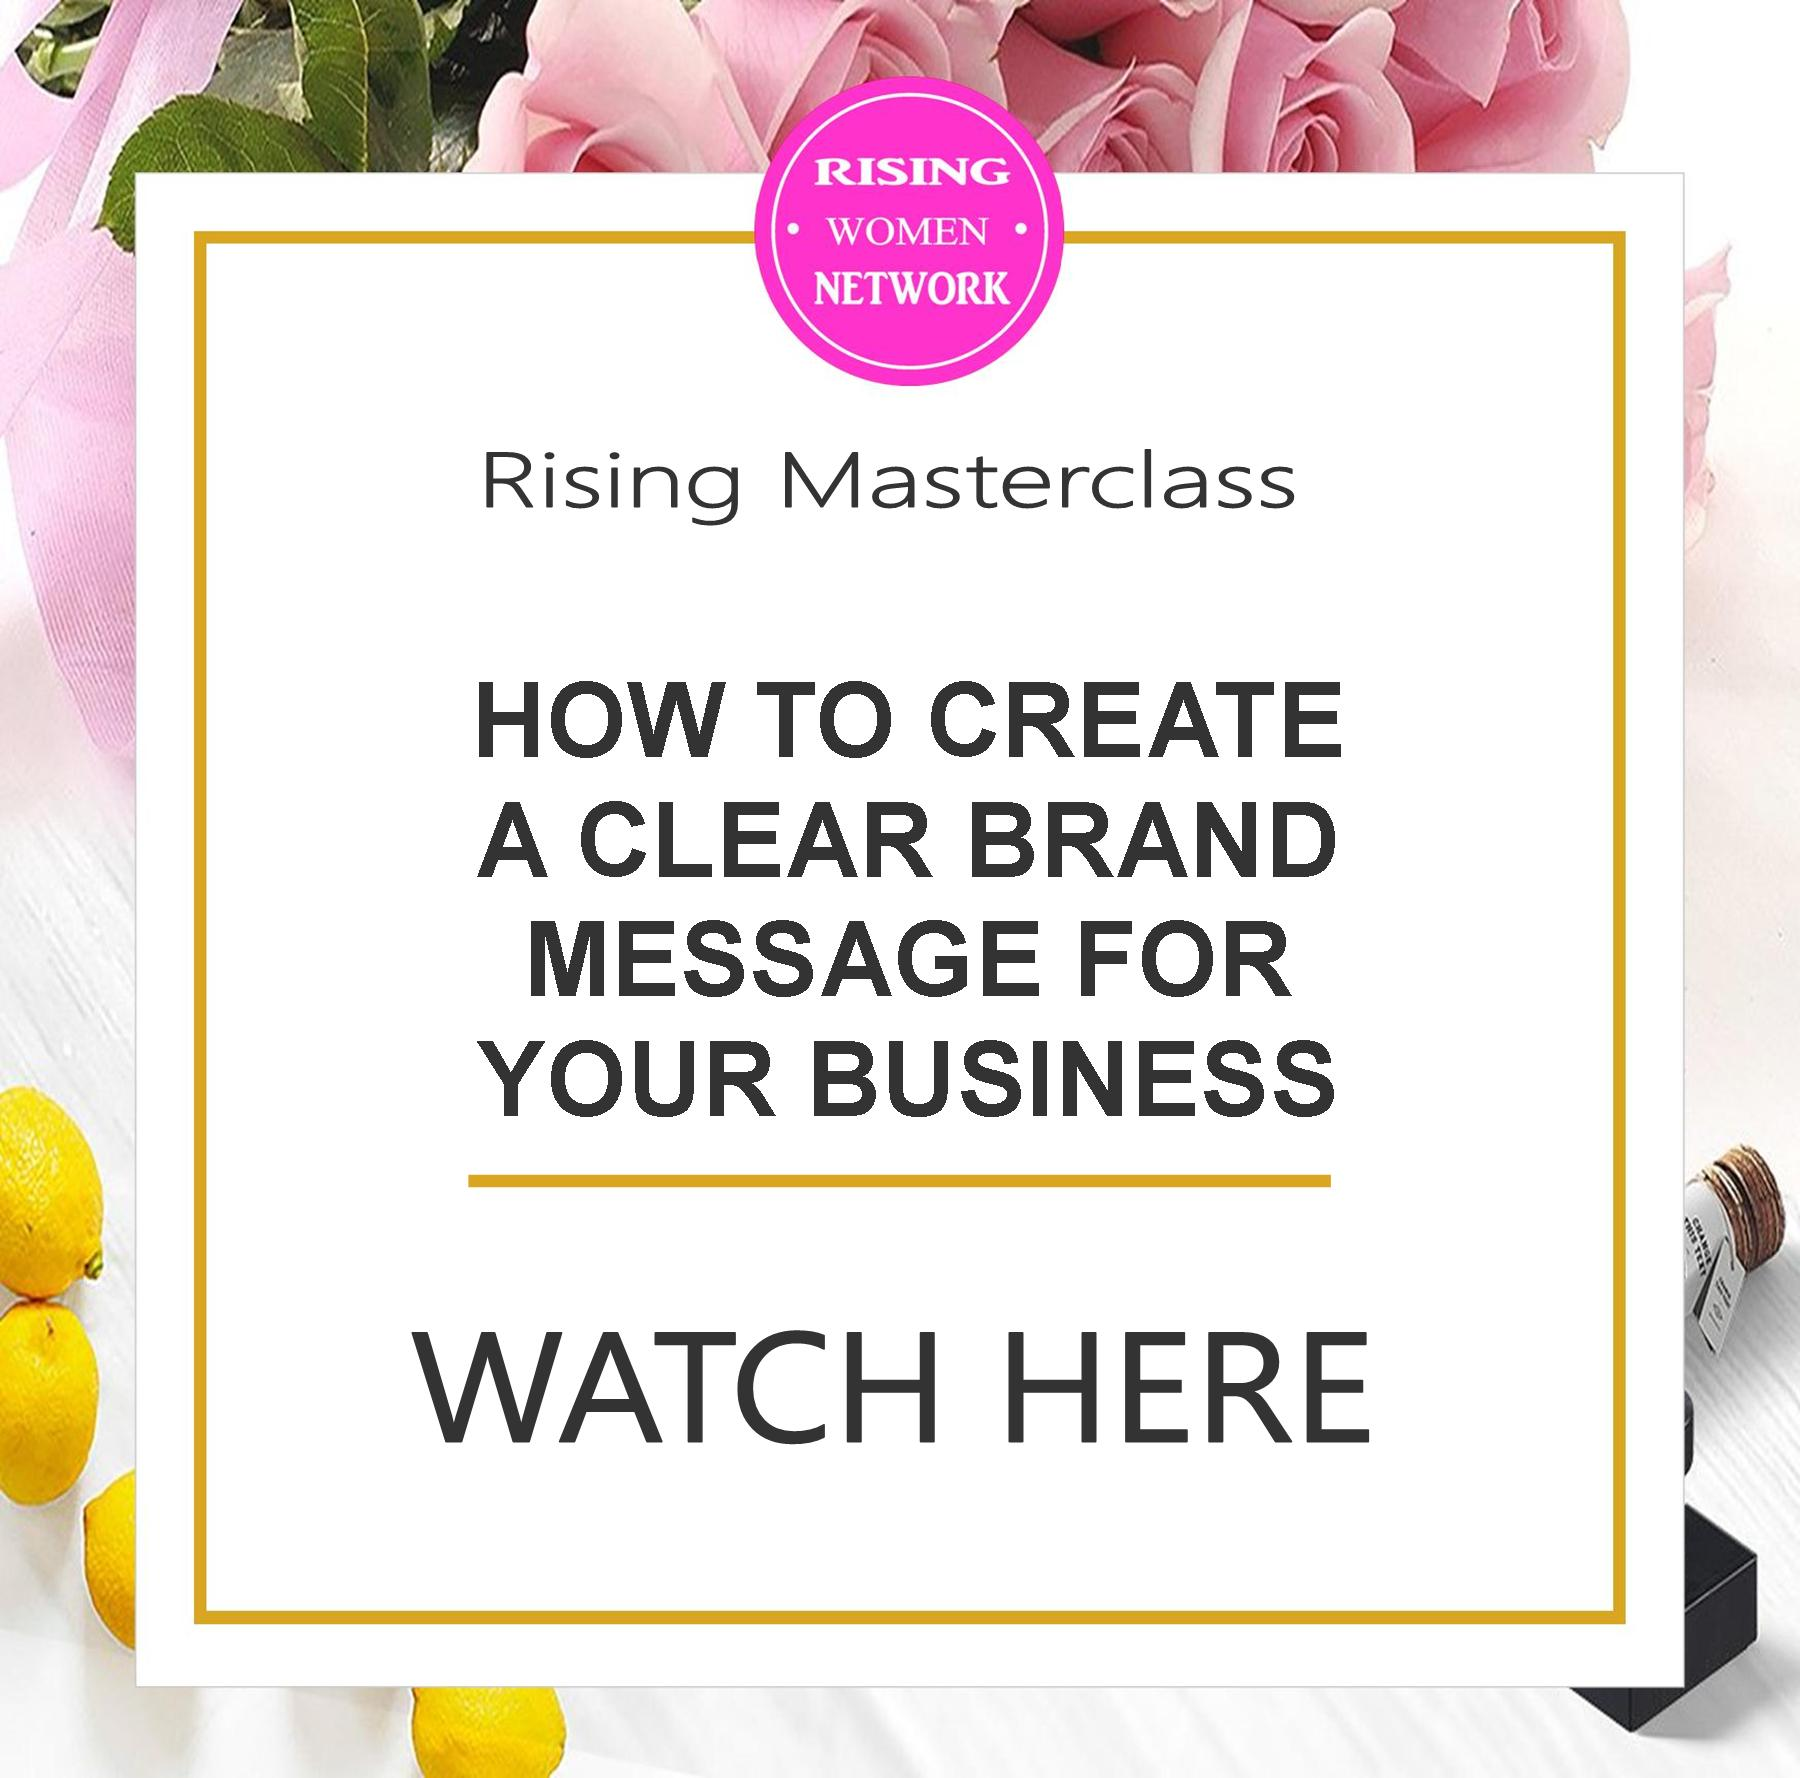 If you're wondering how to create a clear brand message for your business, then here are some top tips. To get you started.